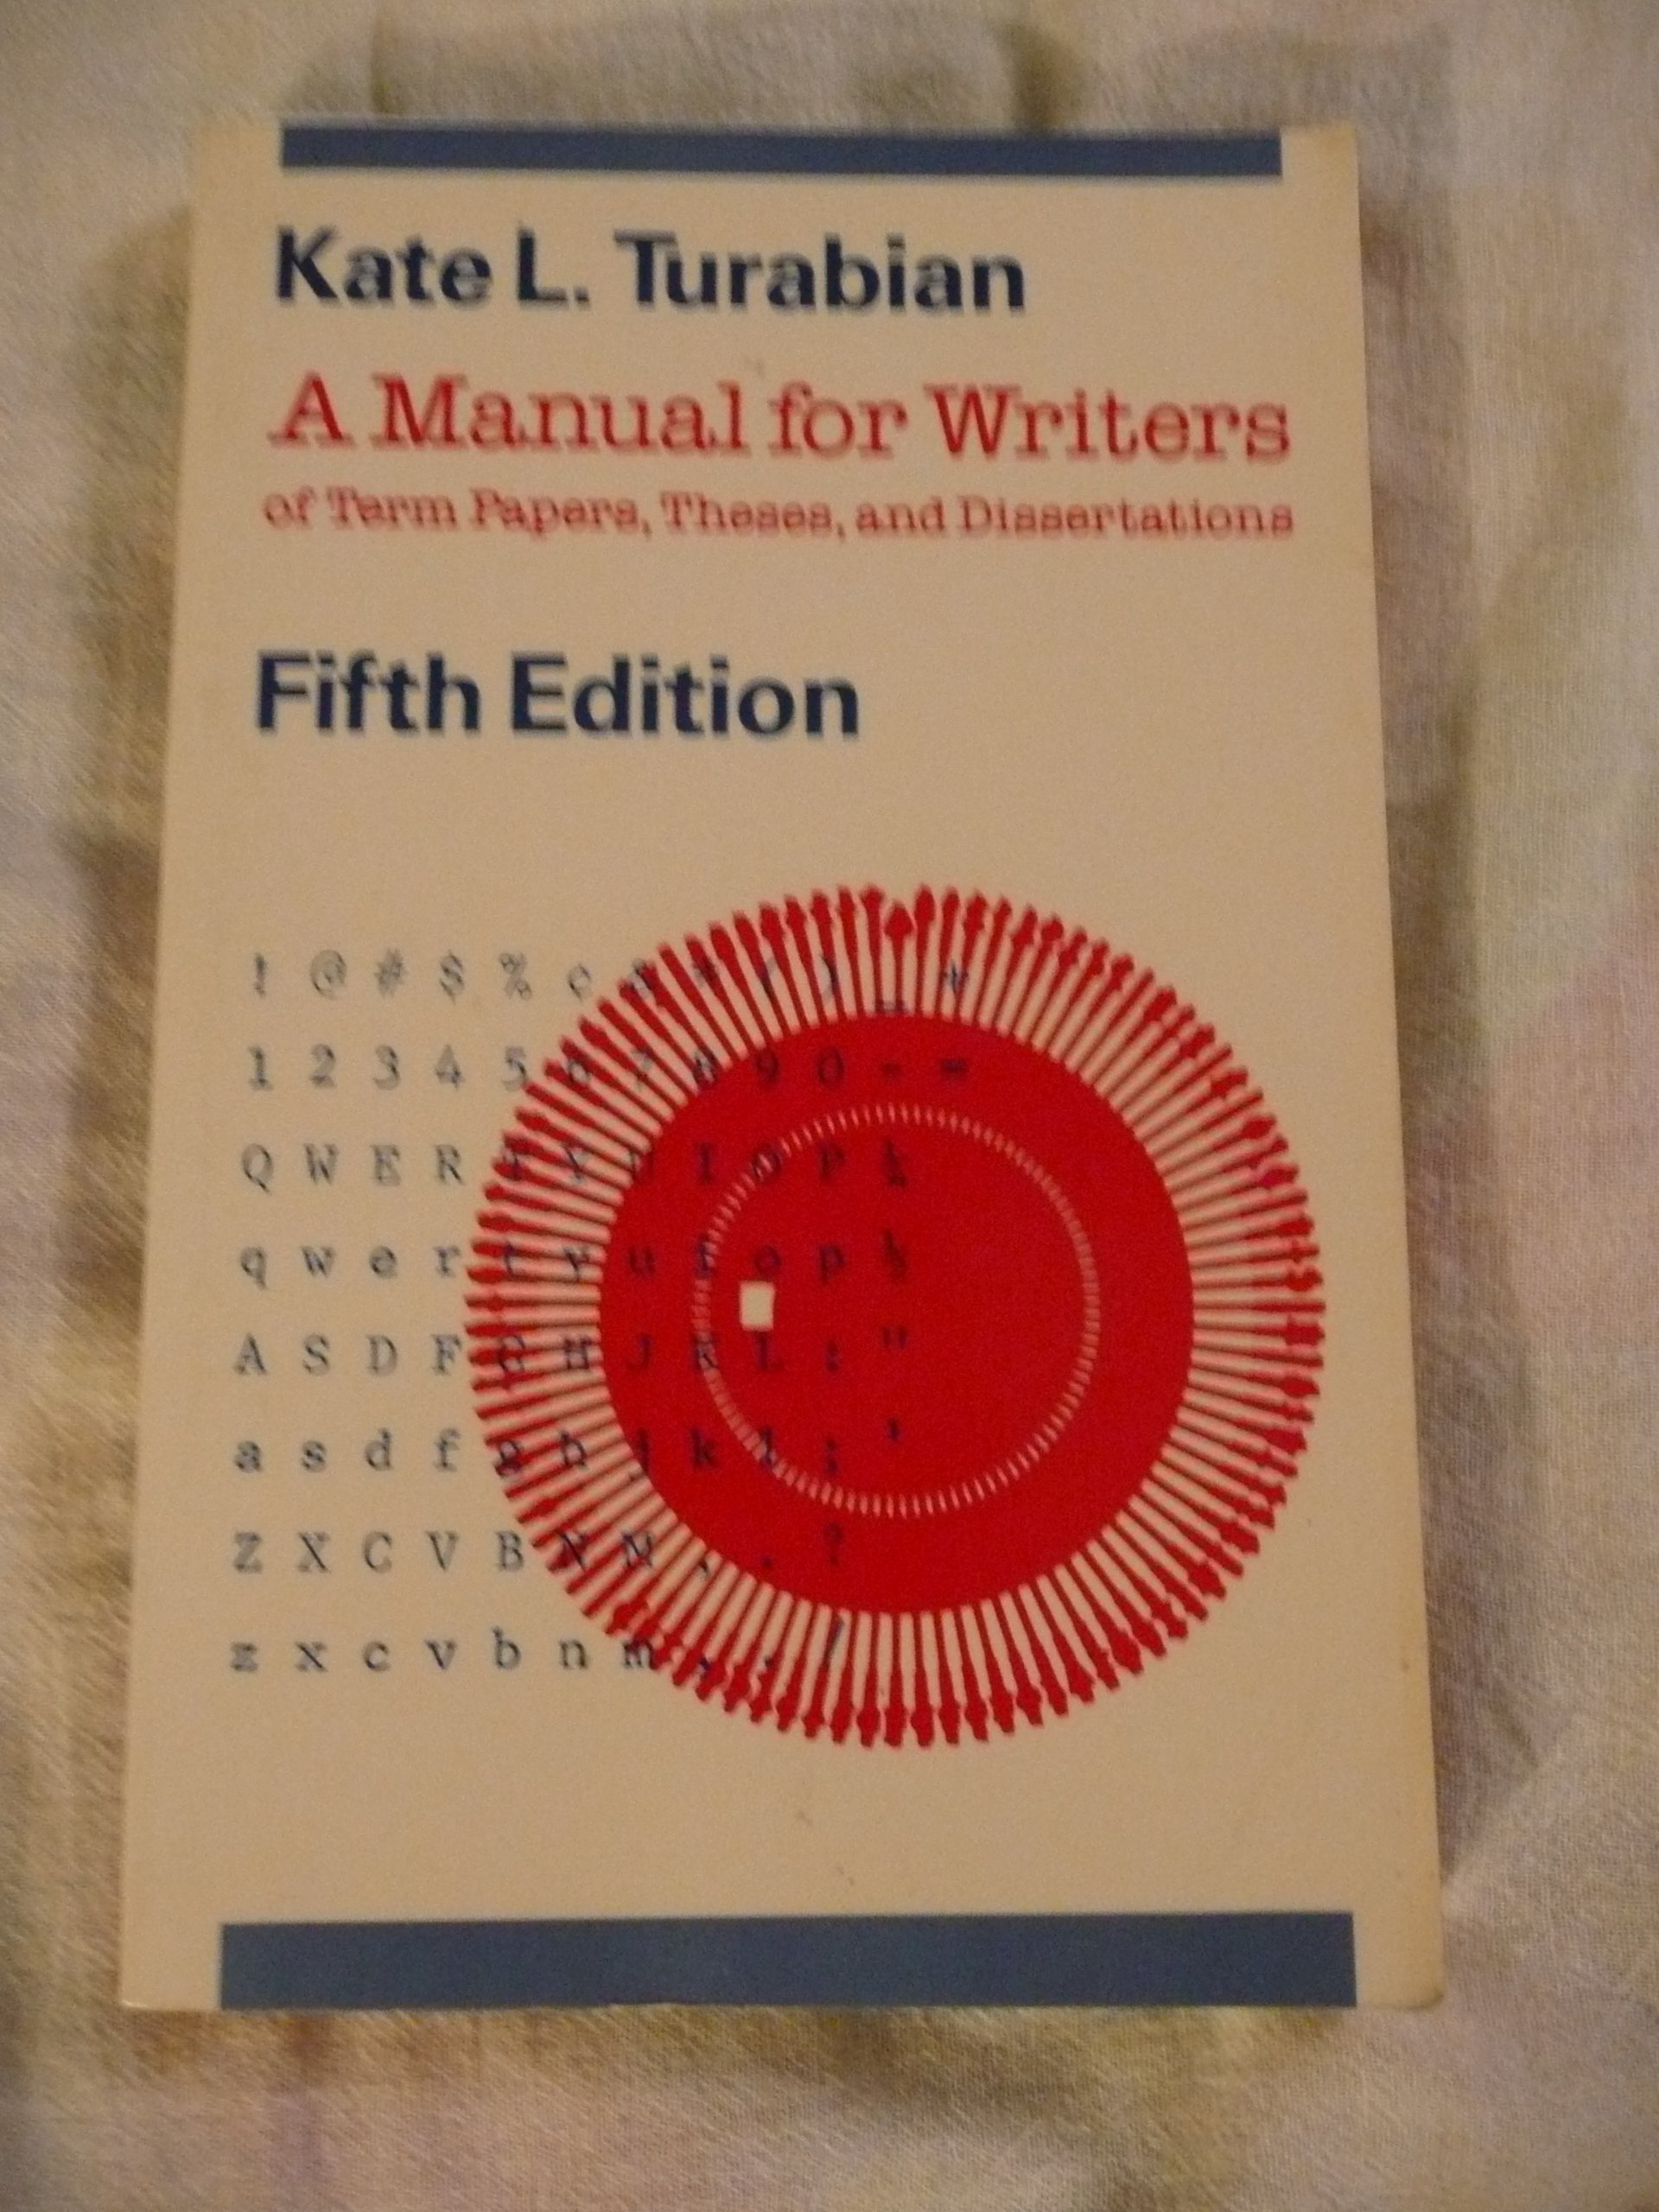 009 Manual For Writers Of Researchs Theses And Dissertations 9th Edition 91nltv7olql Frightening A Research Papers Pdf Full